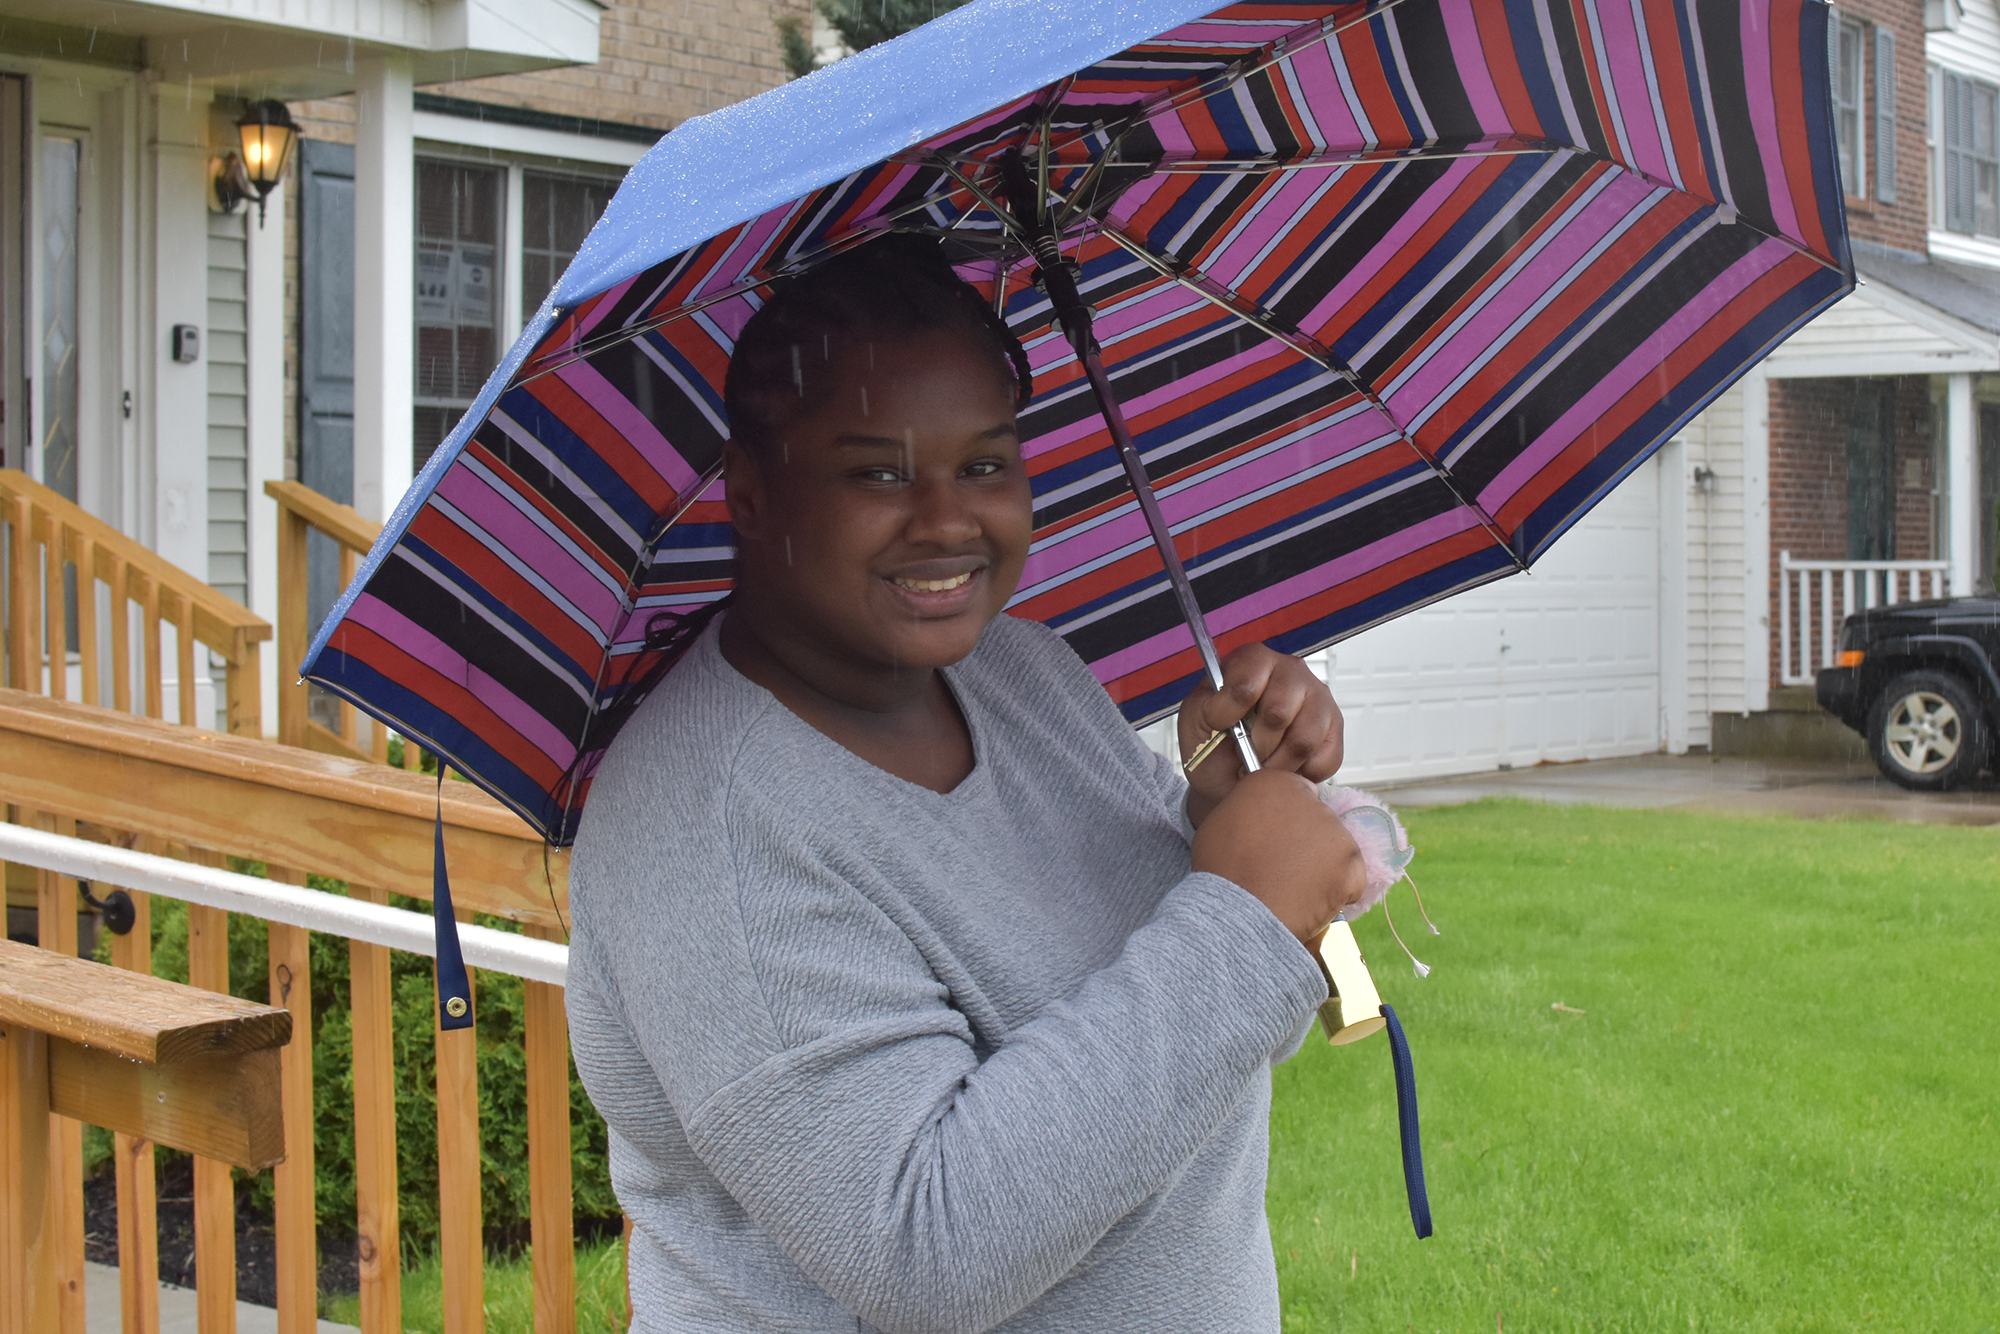 A young woman smiles as she holds an umbrella over her head